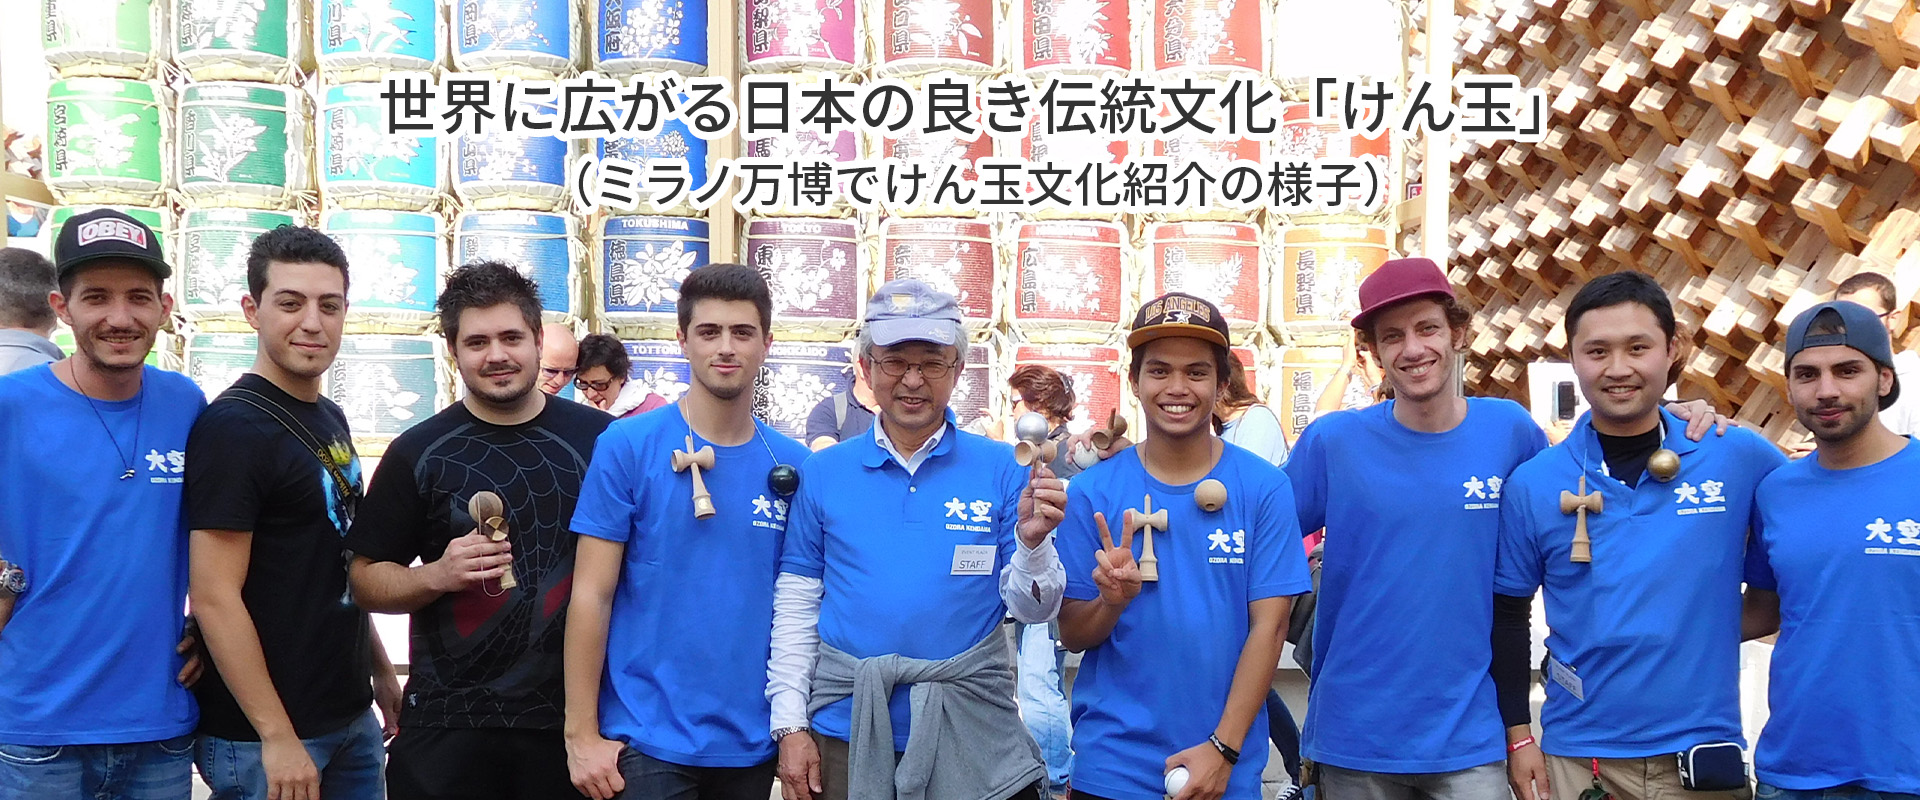 "Japanese traditional culture ""Kendama"" spreads all over the world! (Introduction of Kendama in the Expo Milan 2015)"